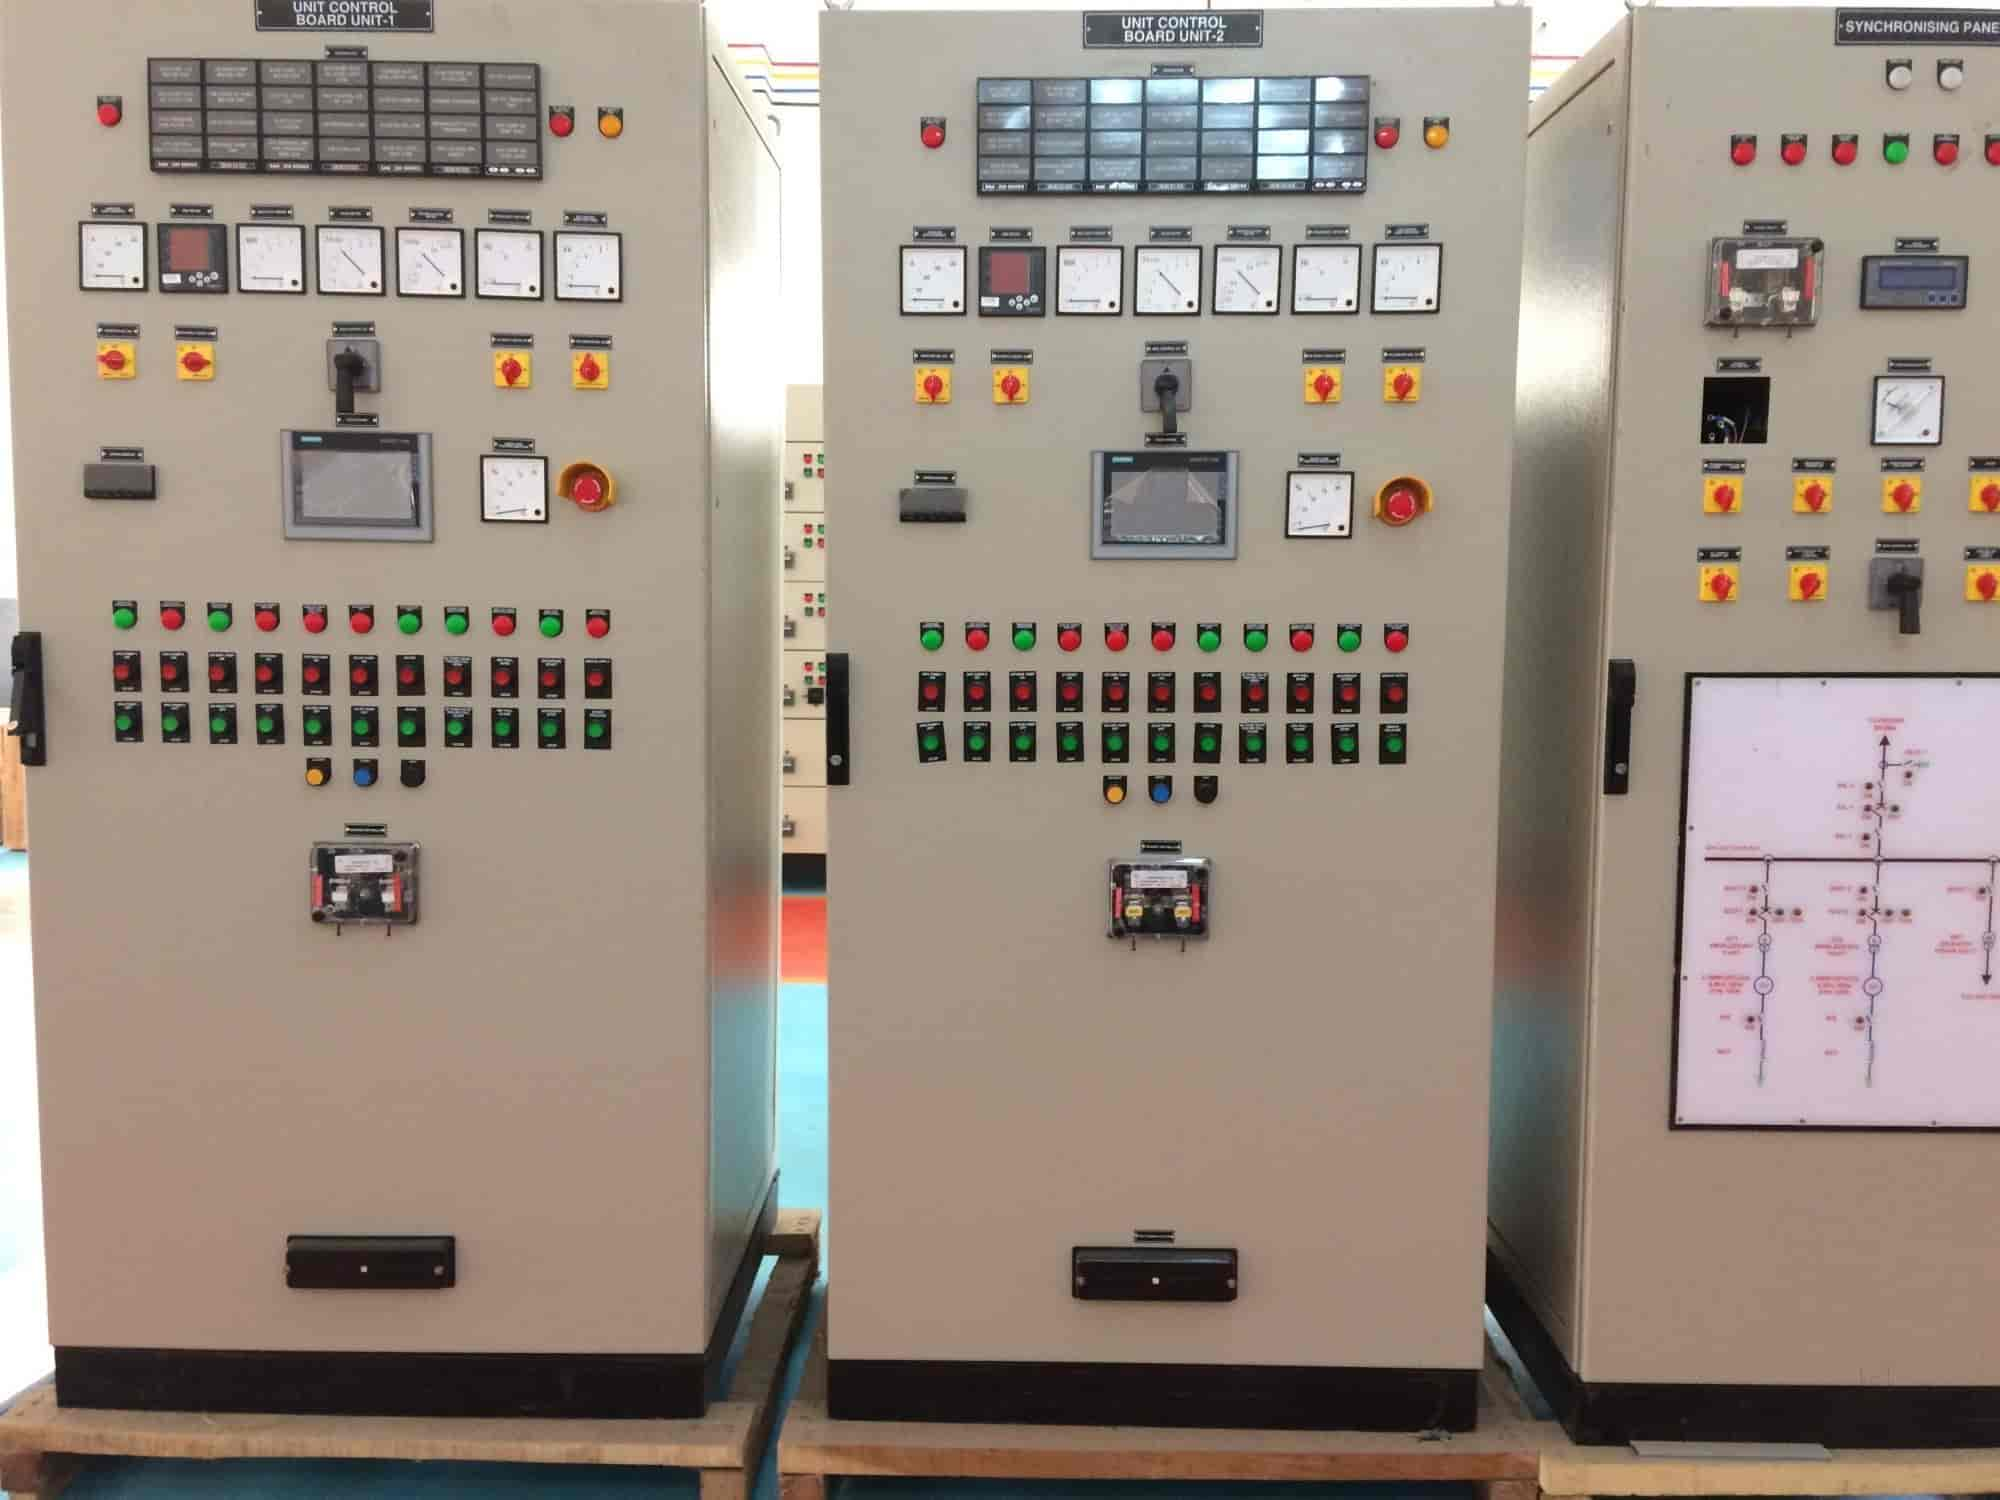 M M Engineers, Noida Sector 63 - Electrical Control Panel